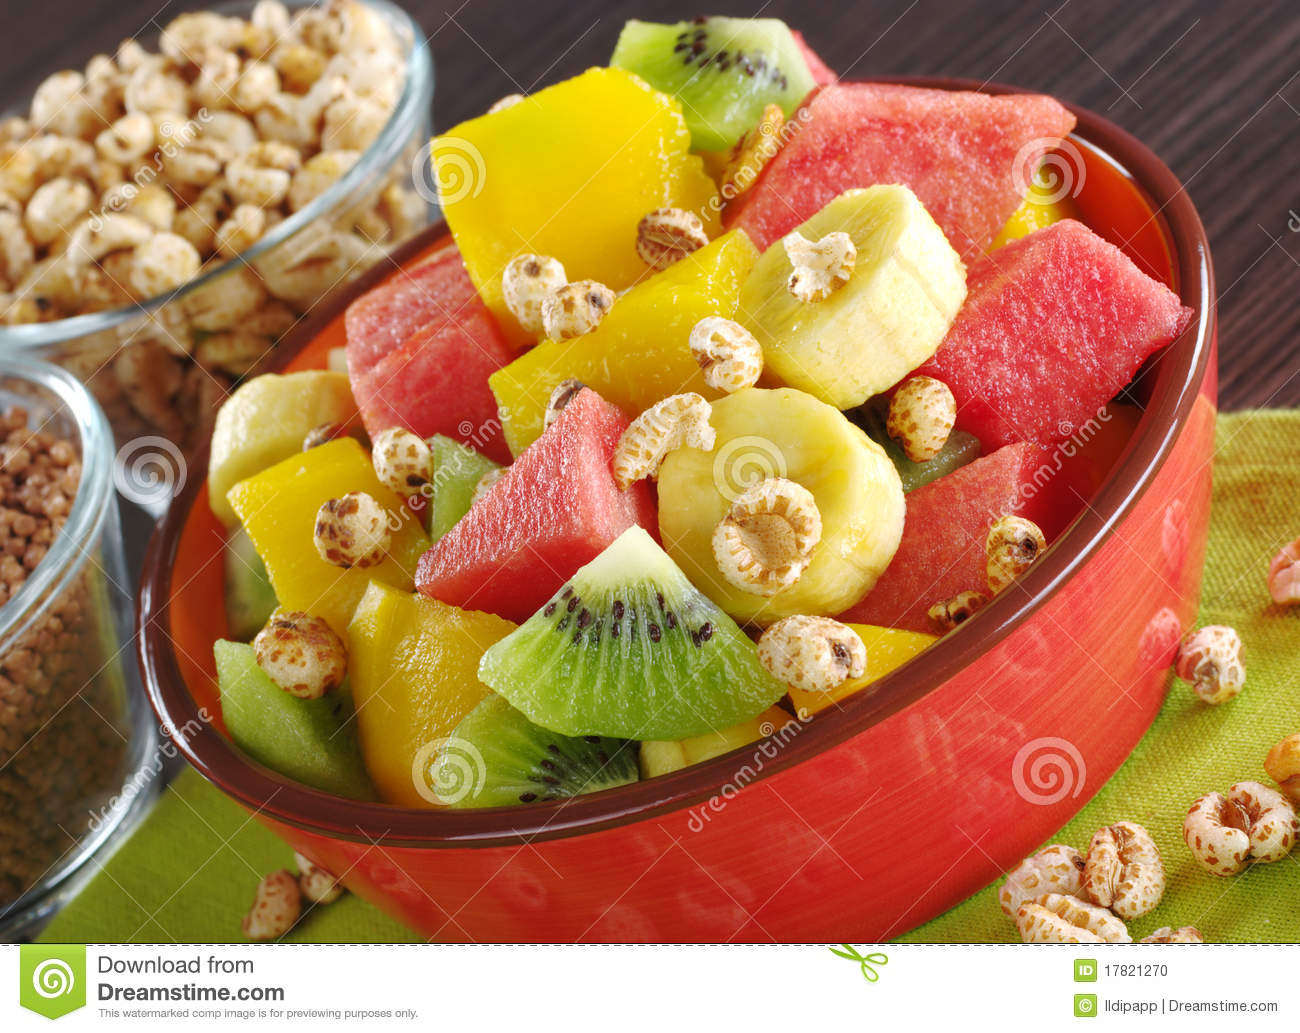 Stock Photo: Fruit Salad with Cereals